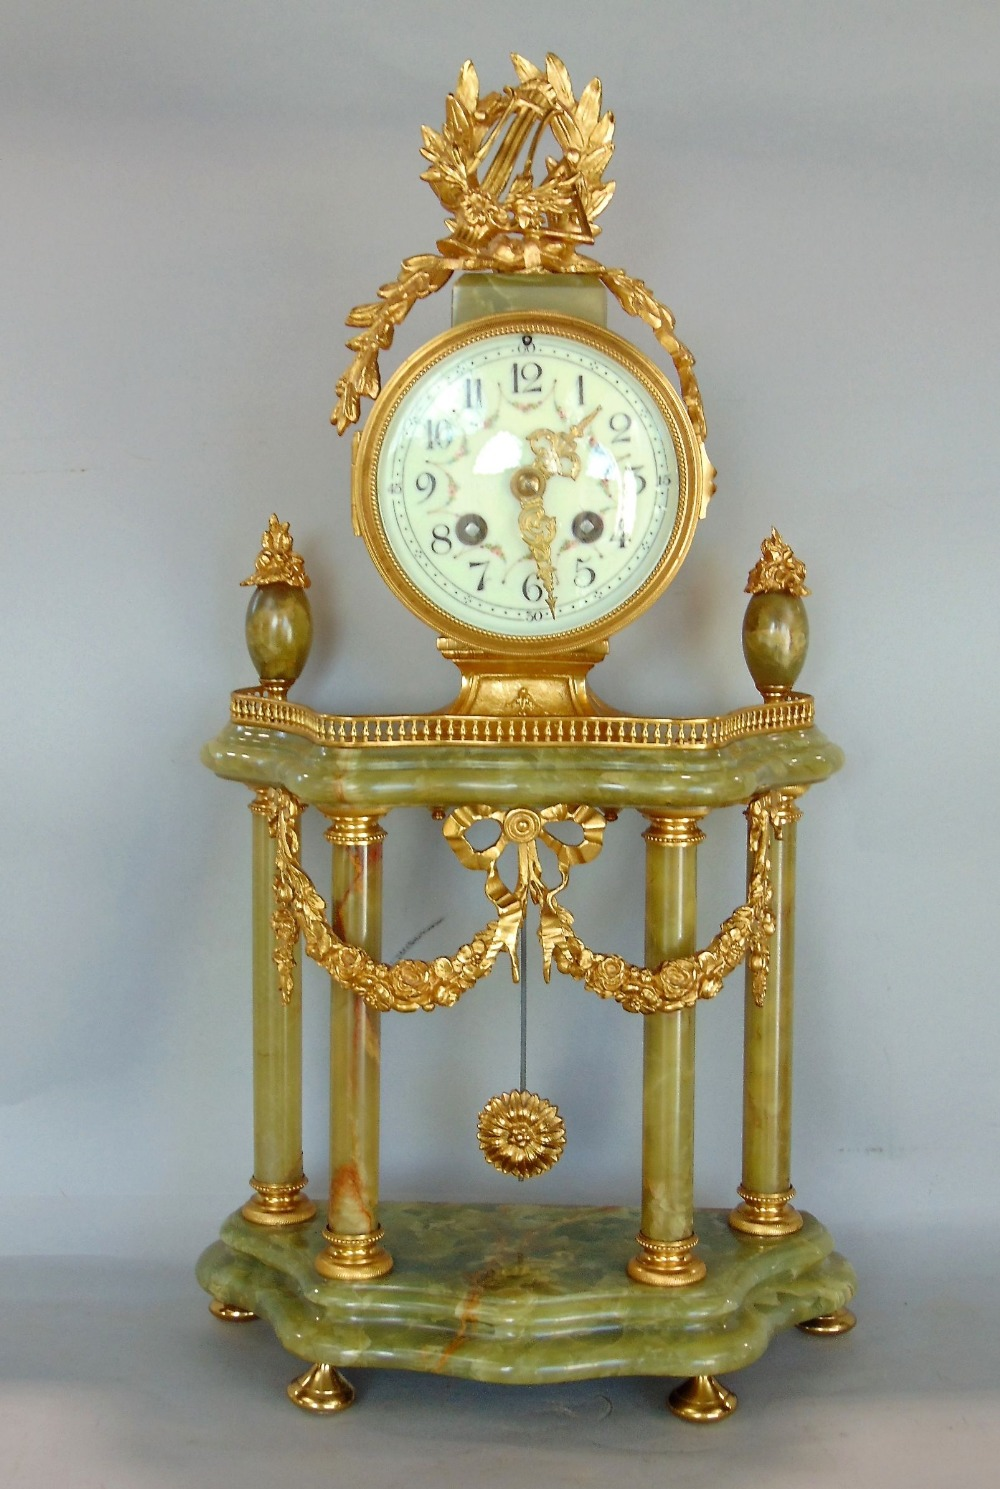 Lot 582 - French gilt metal and agate portico type mantel clock, the twin train drum head movement with Arabic